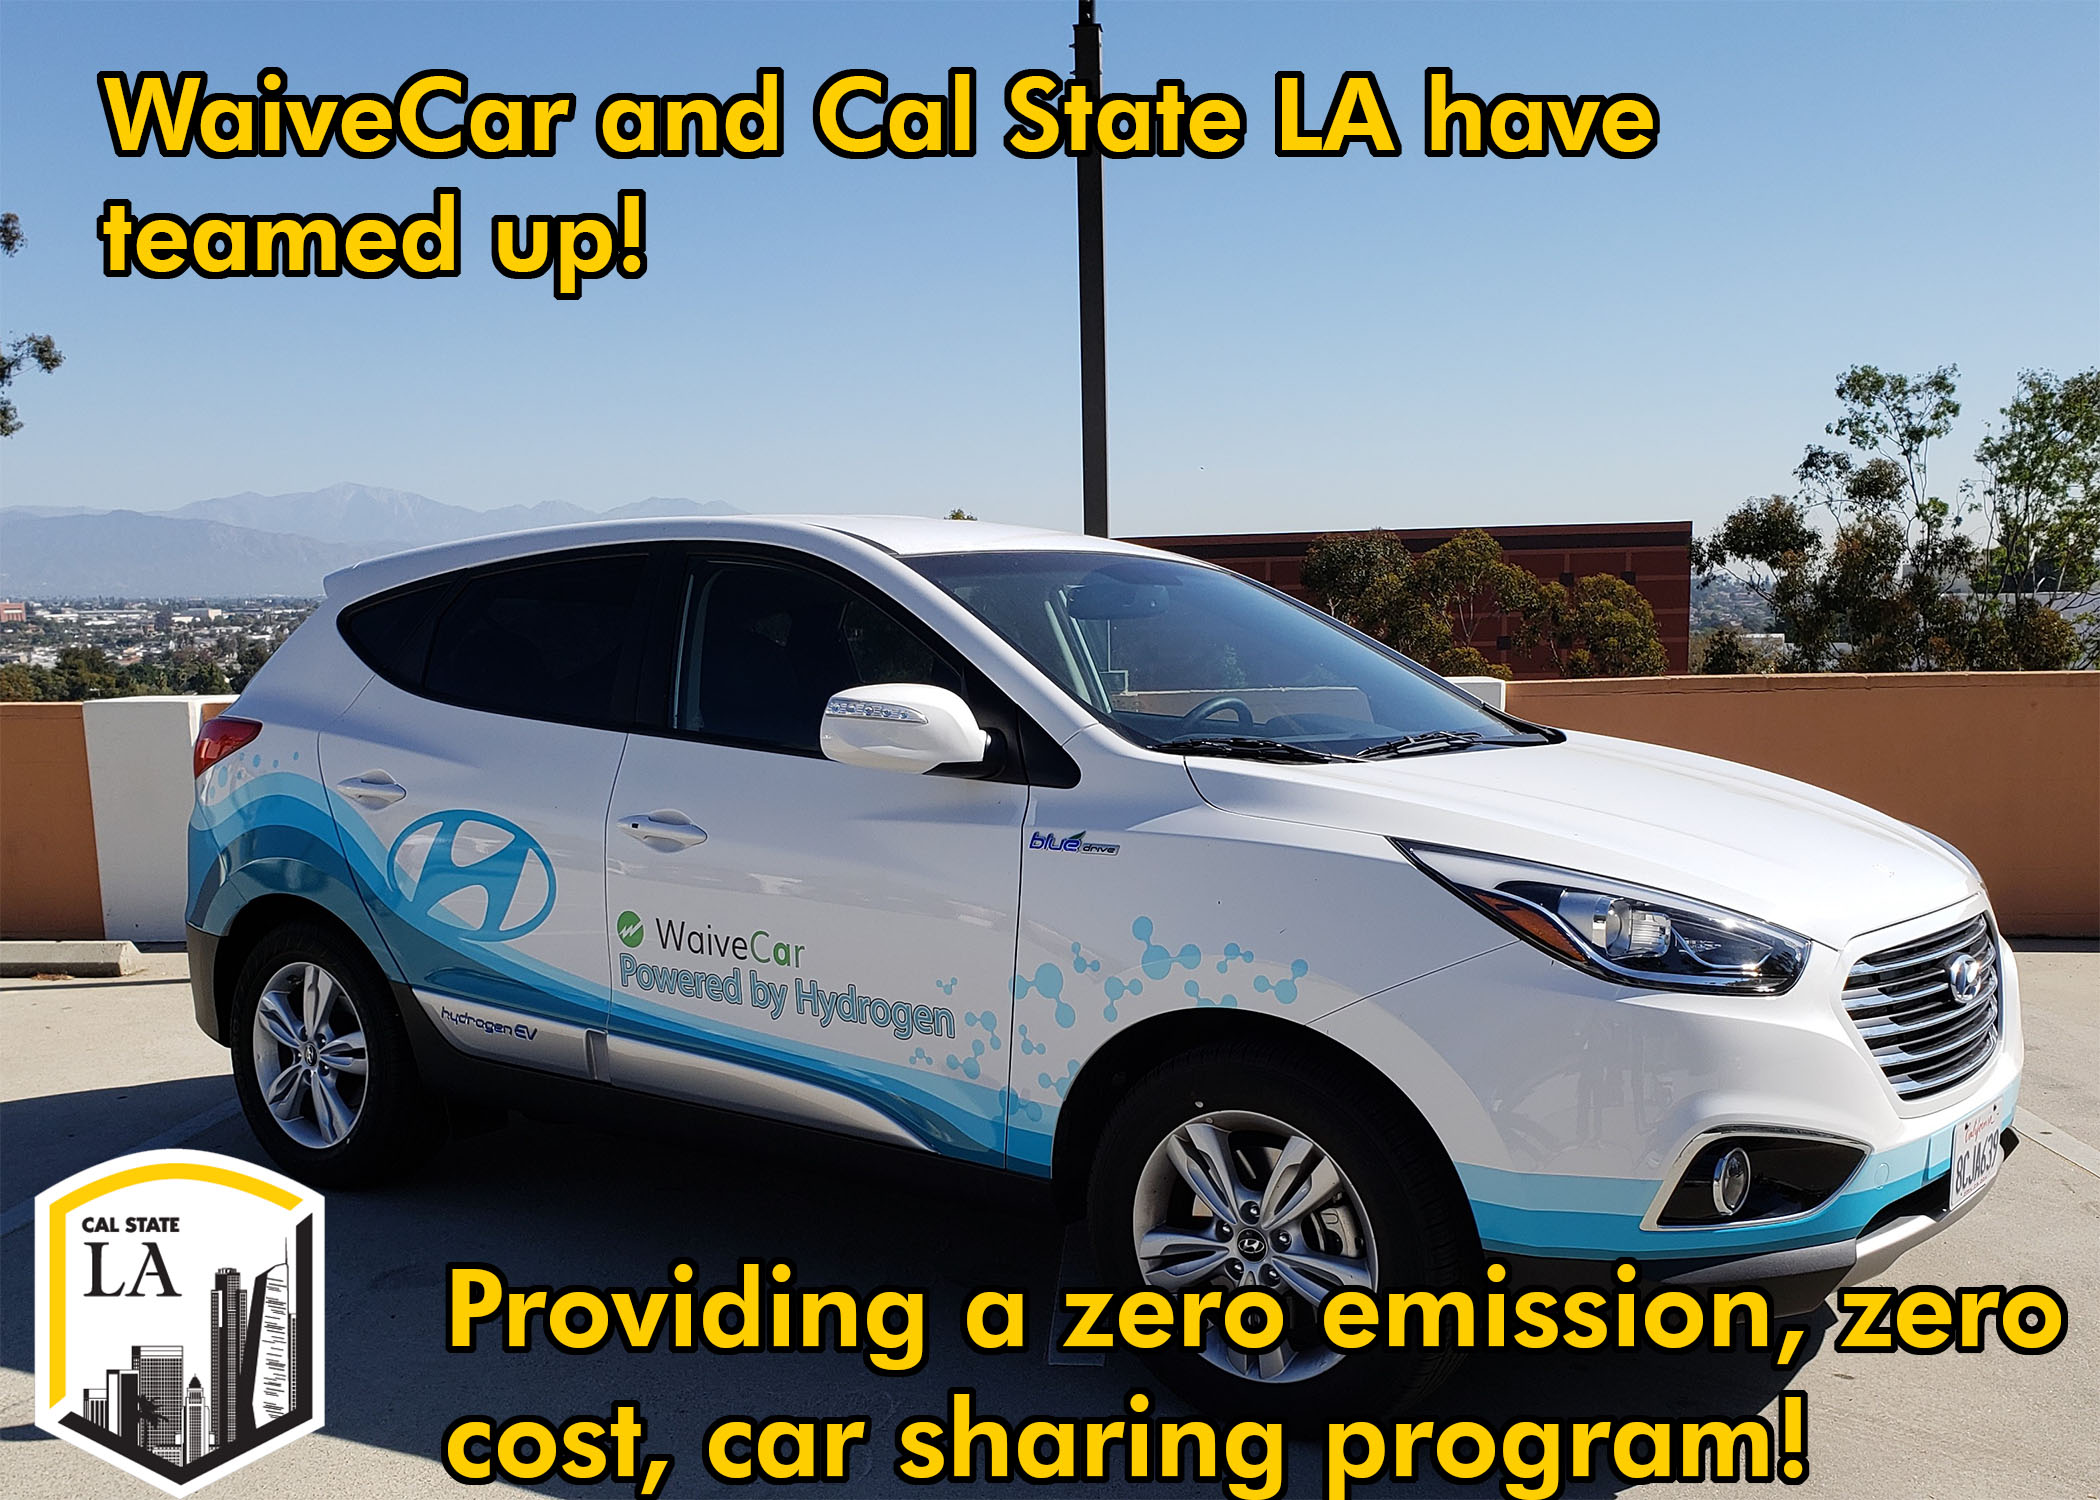 WaiveCar and Cal State LA Have Teamed Up! Providing zero emission, zero cost car-sharing program